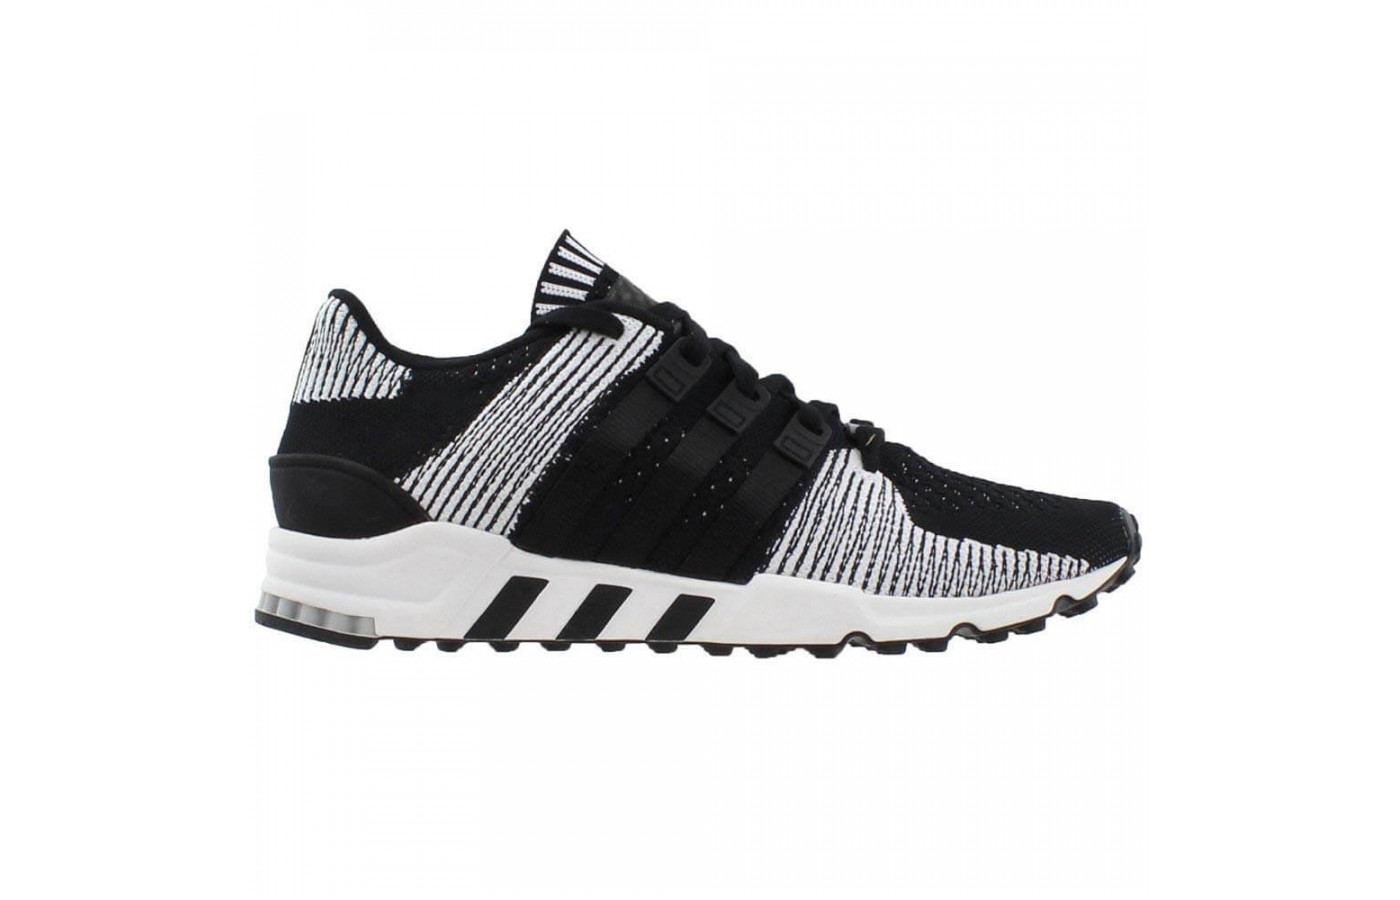 Adidas EQT Support RF Primeknit Lateral